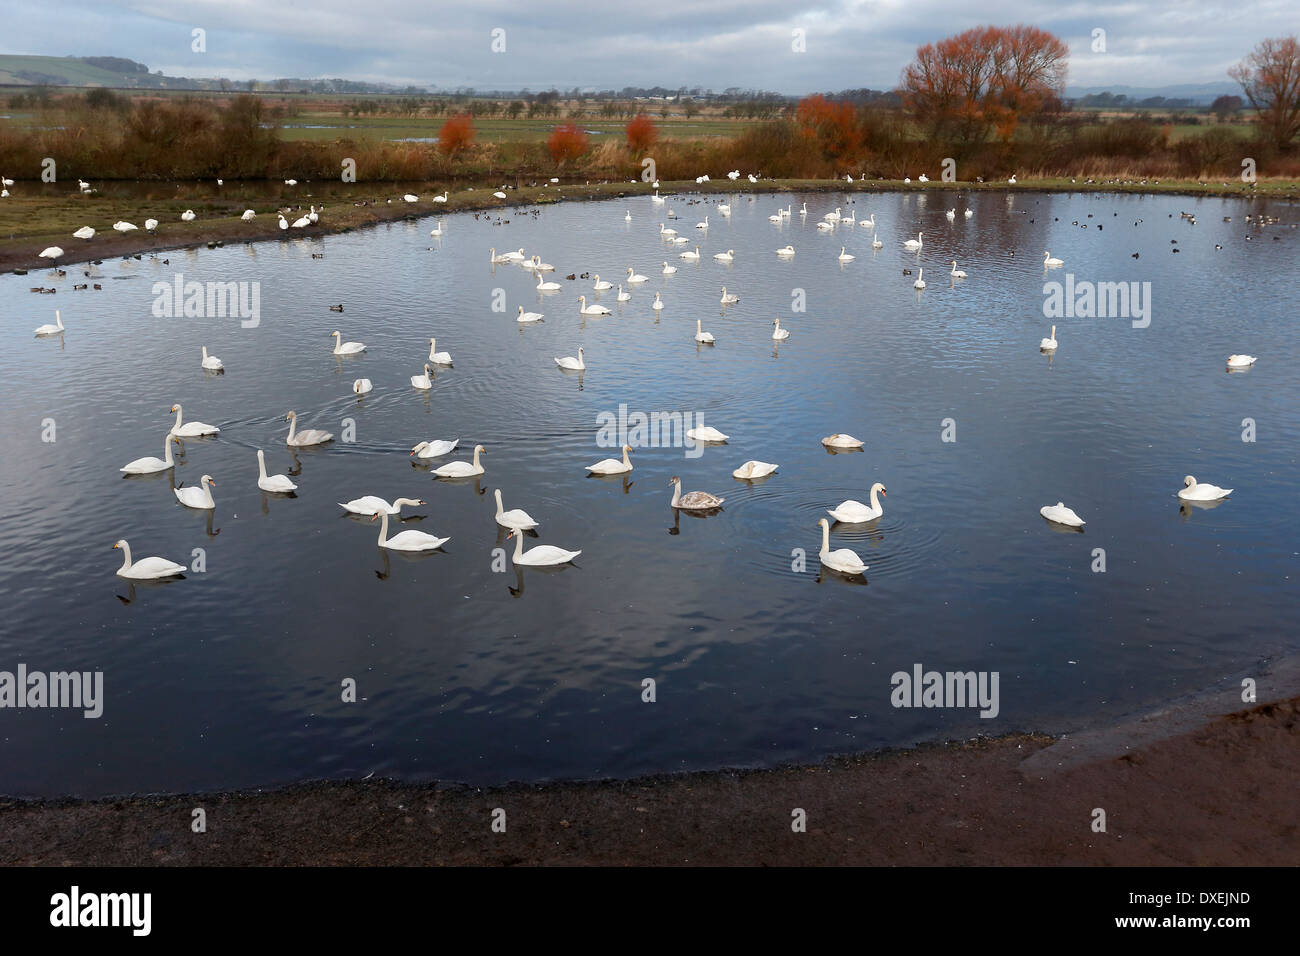 Caerlaverock from the Peter Scot hide, Dumfries, February 2014 - Stock Image